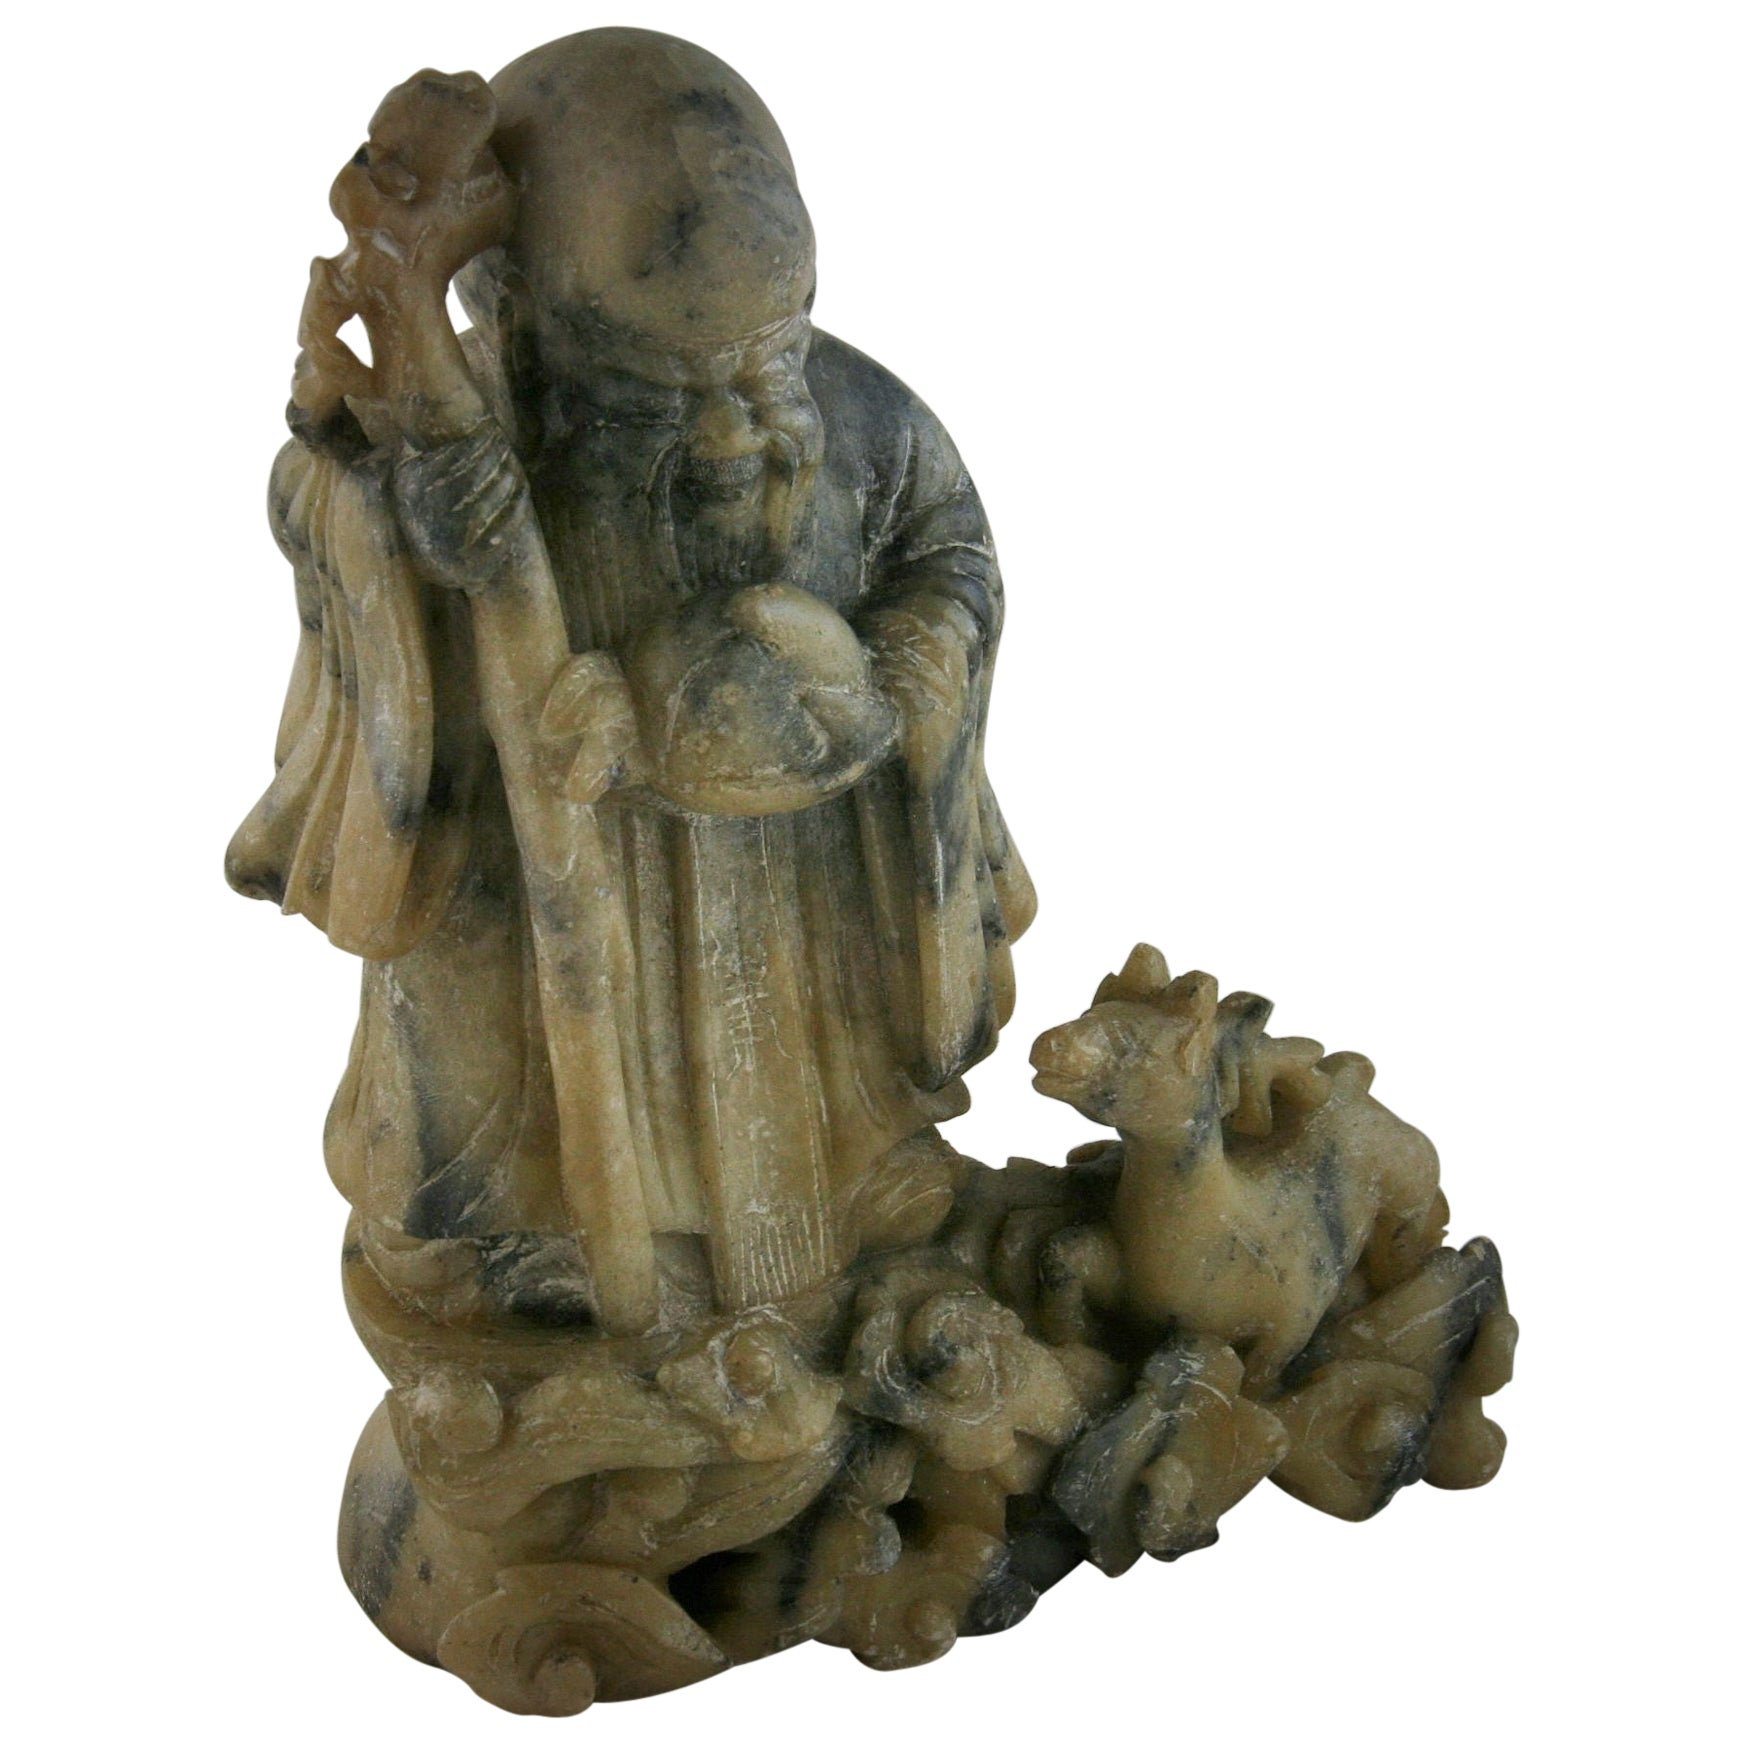 Buddha Soapstone Sculpture with Turtle and Deer